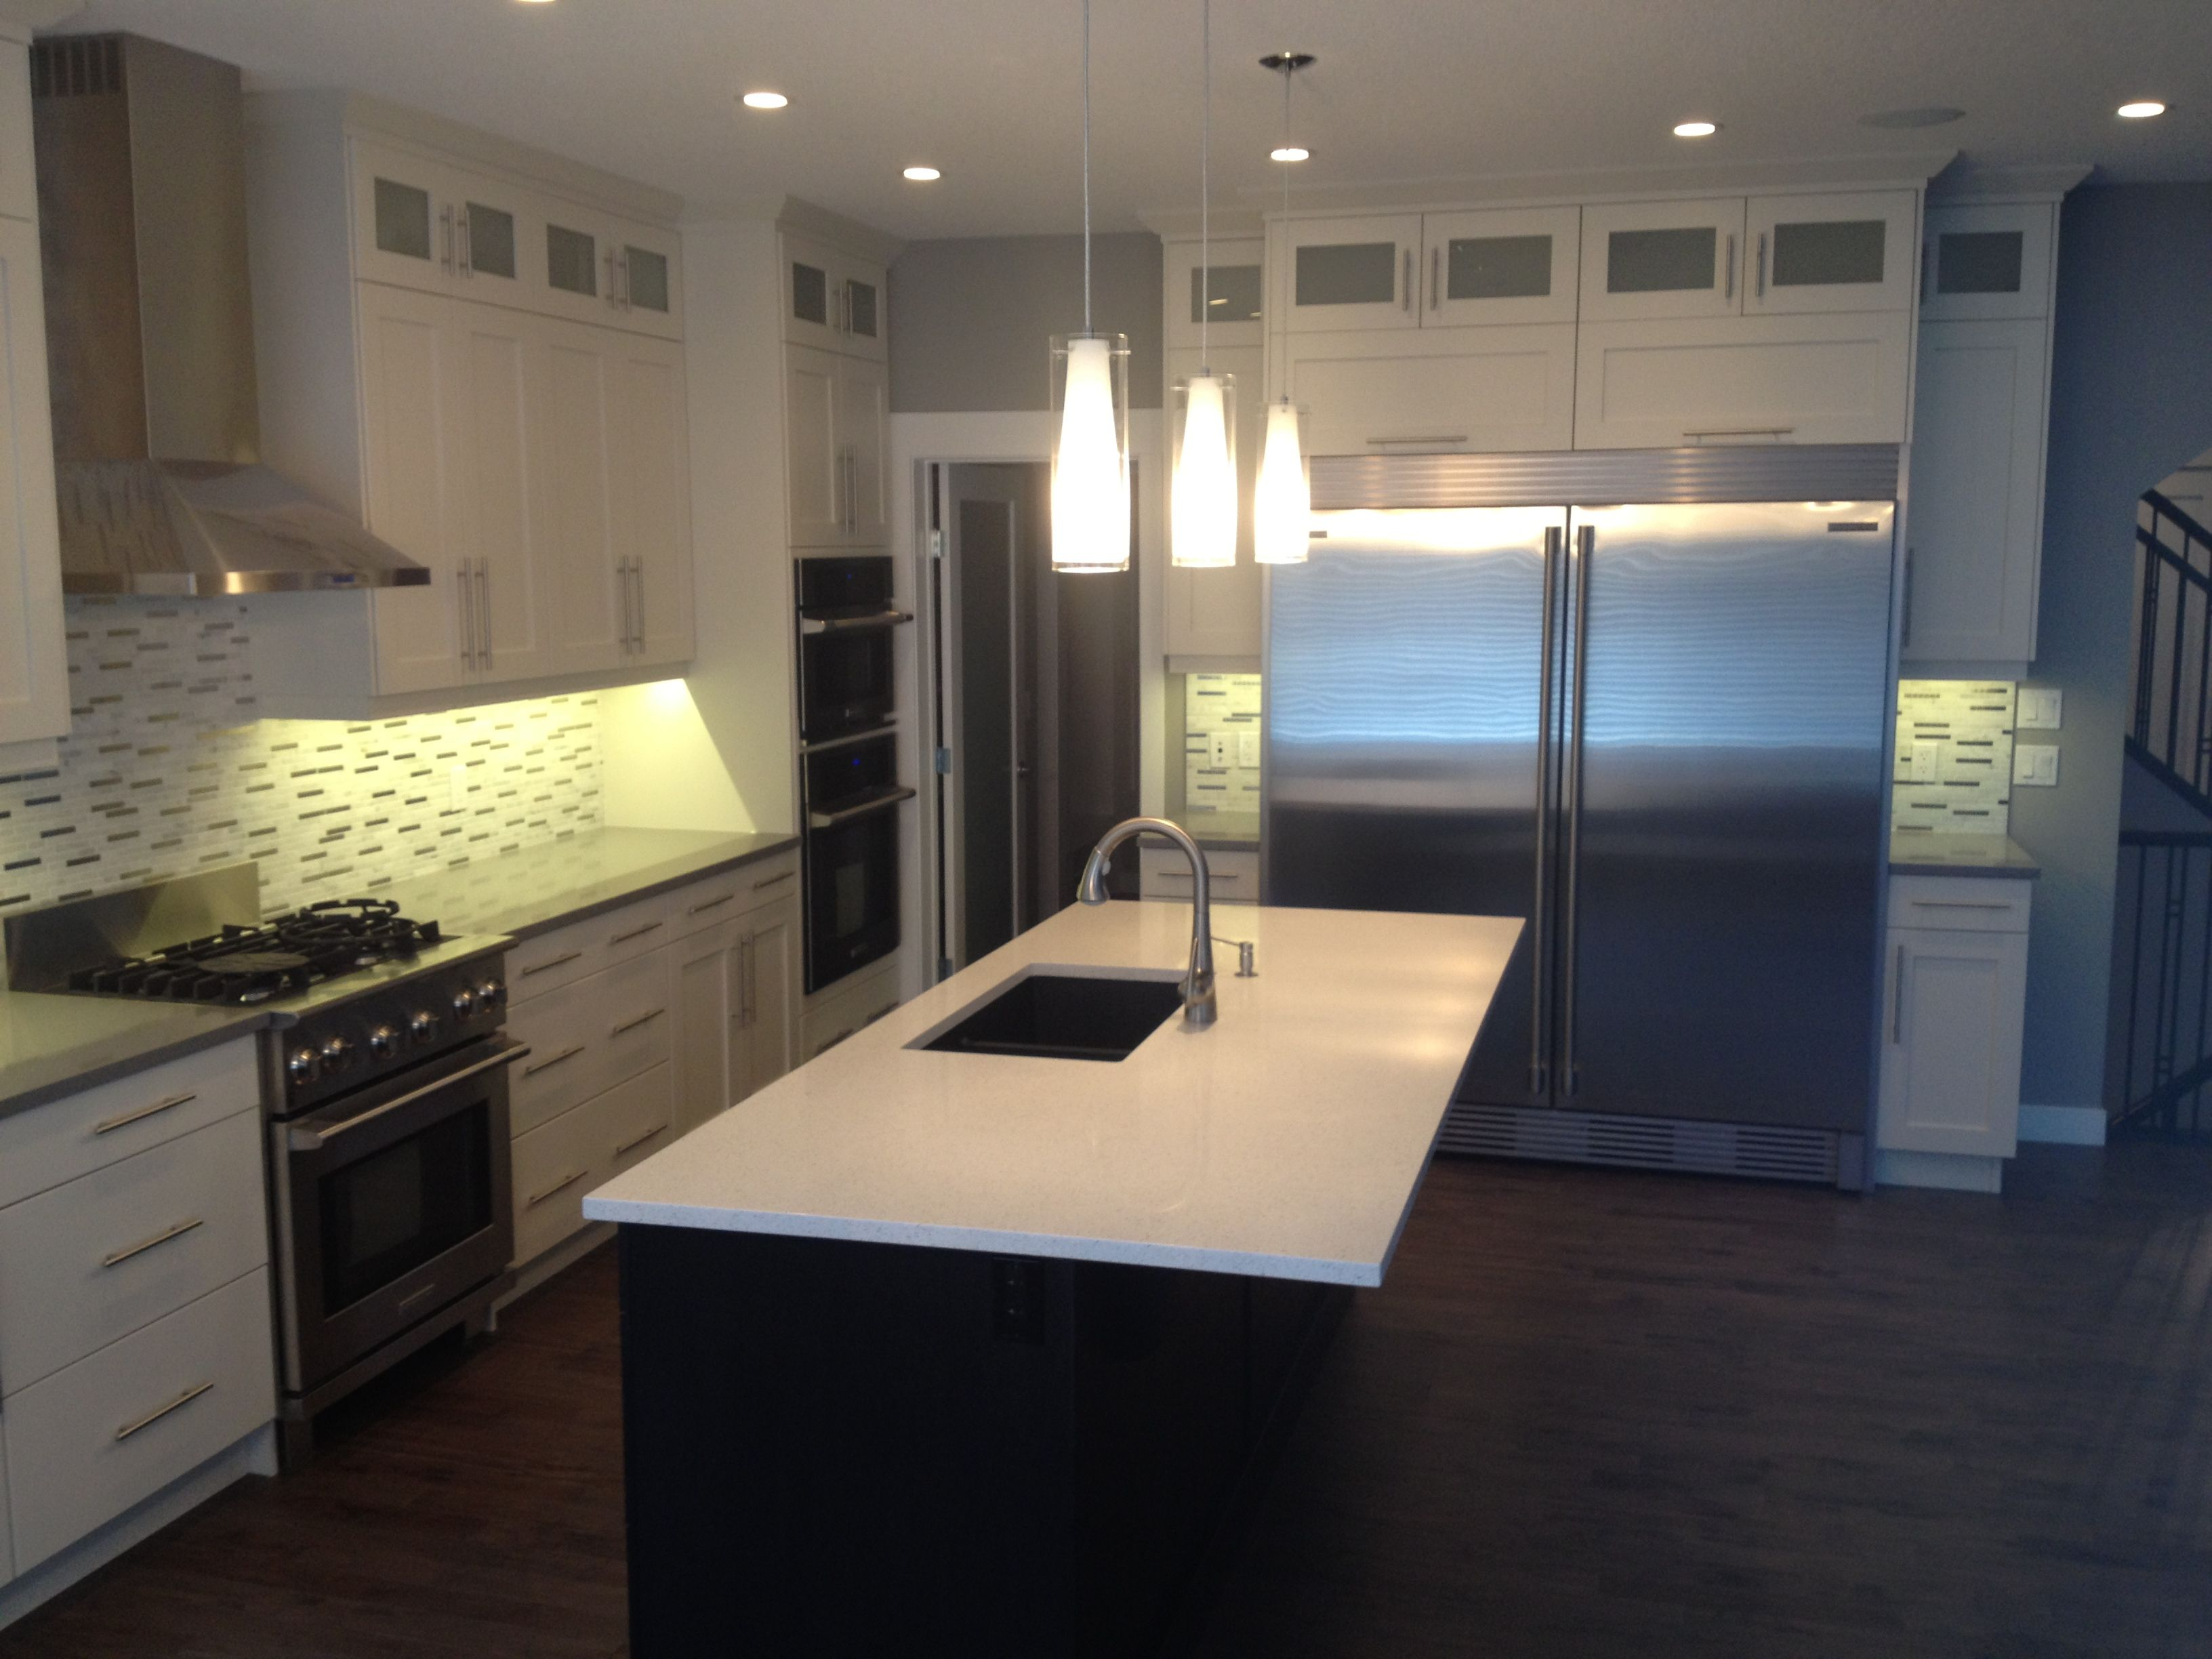 Lovely Westridge Cabinets In Arctic White 65 Sheen/Maple, Shaker Style Uppers (to  Ceiling